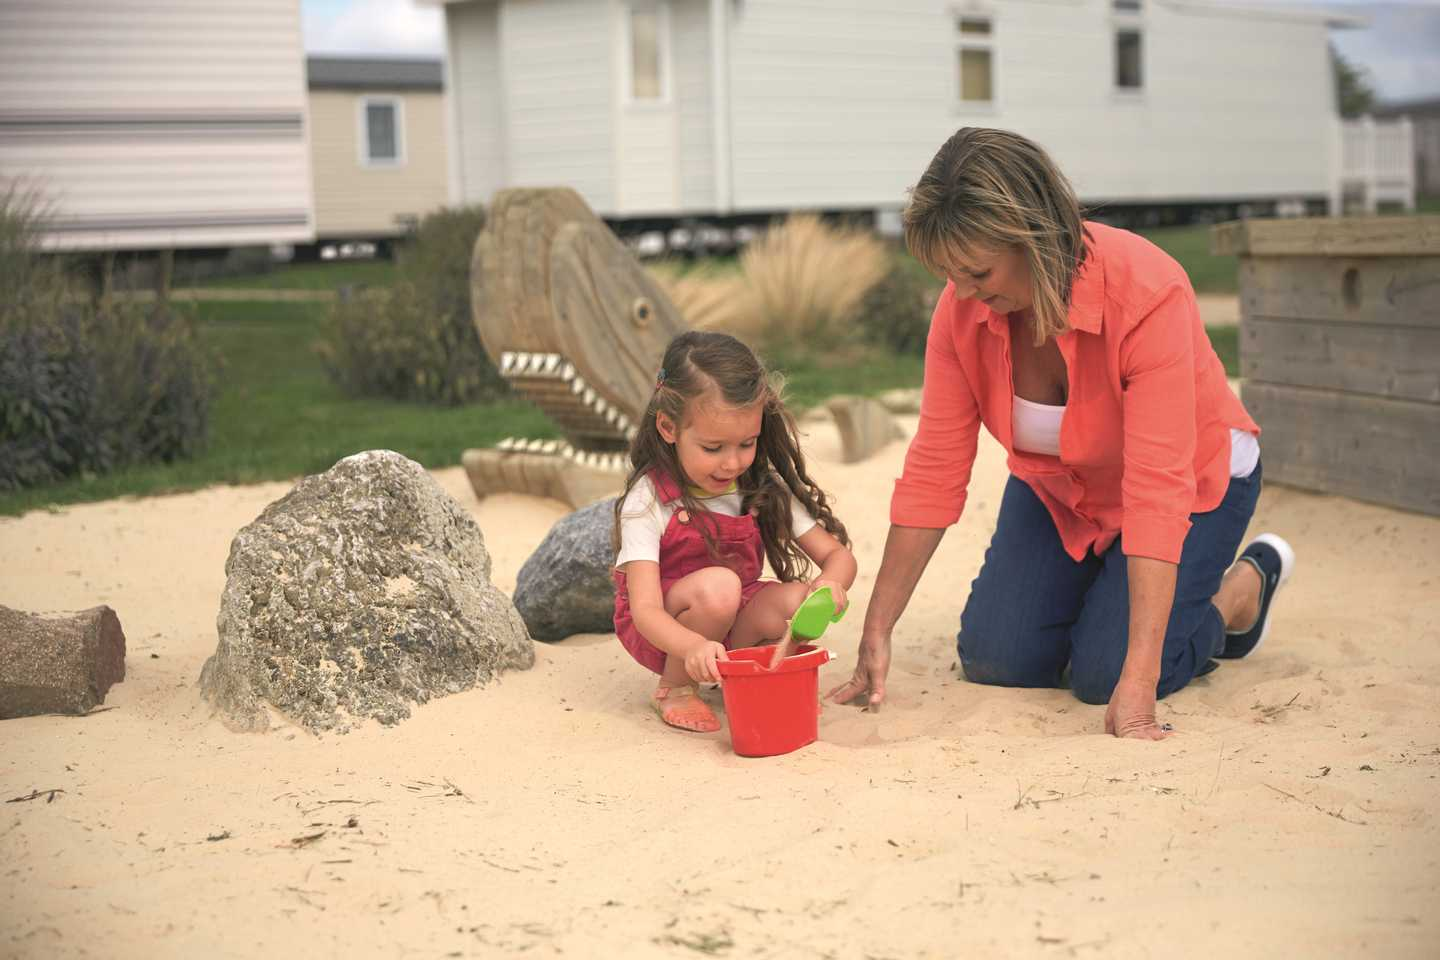 A mother and daughter building sandcastles